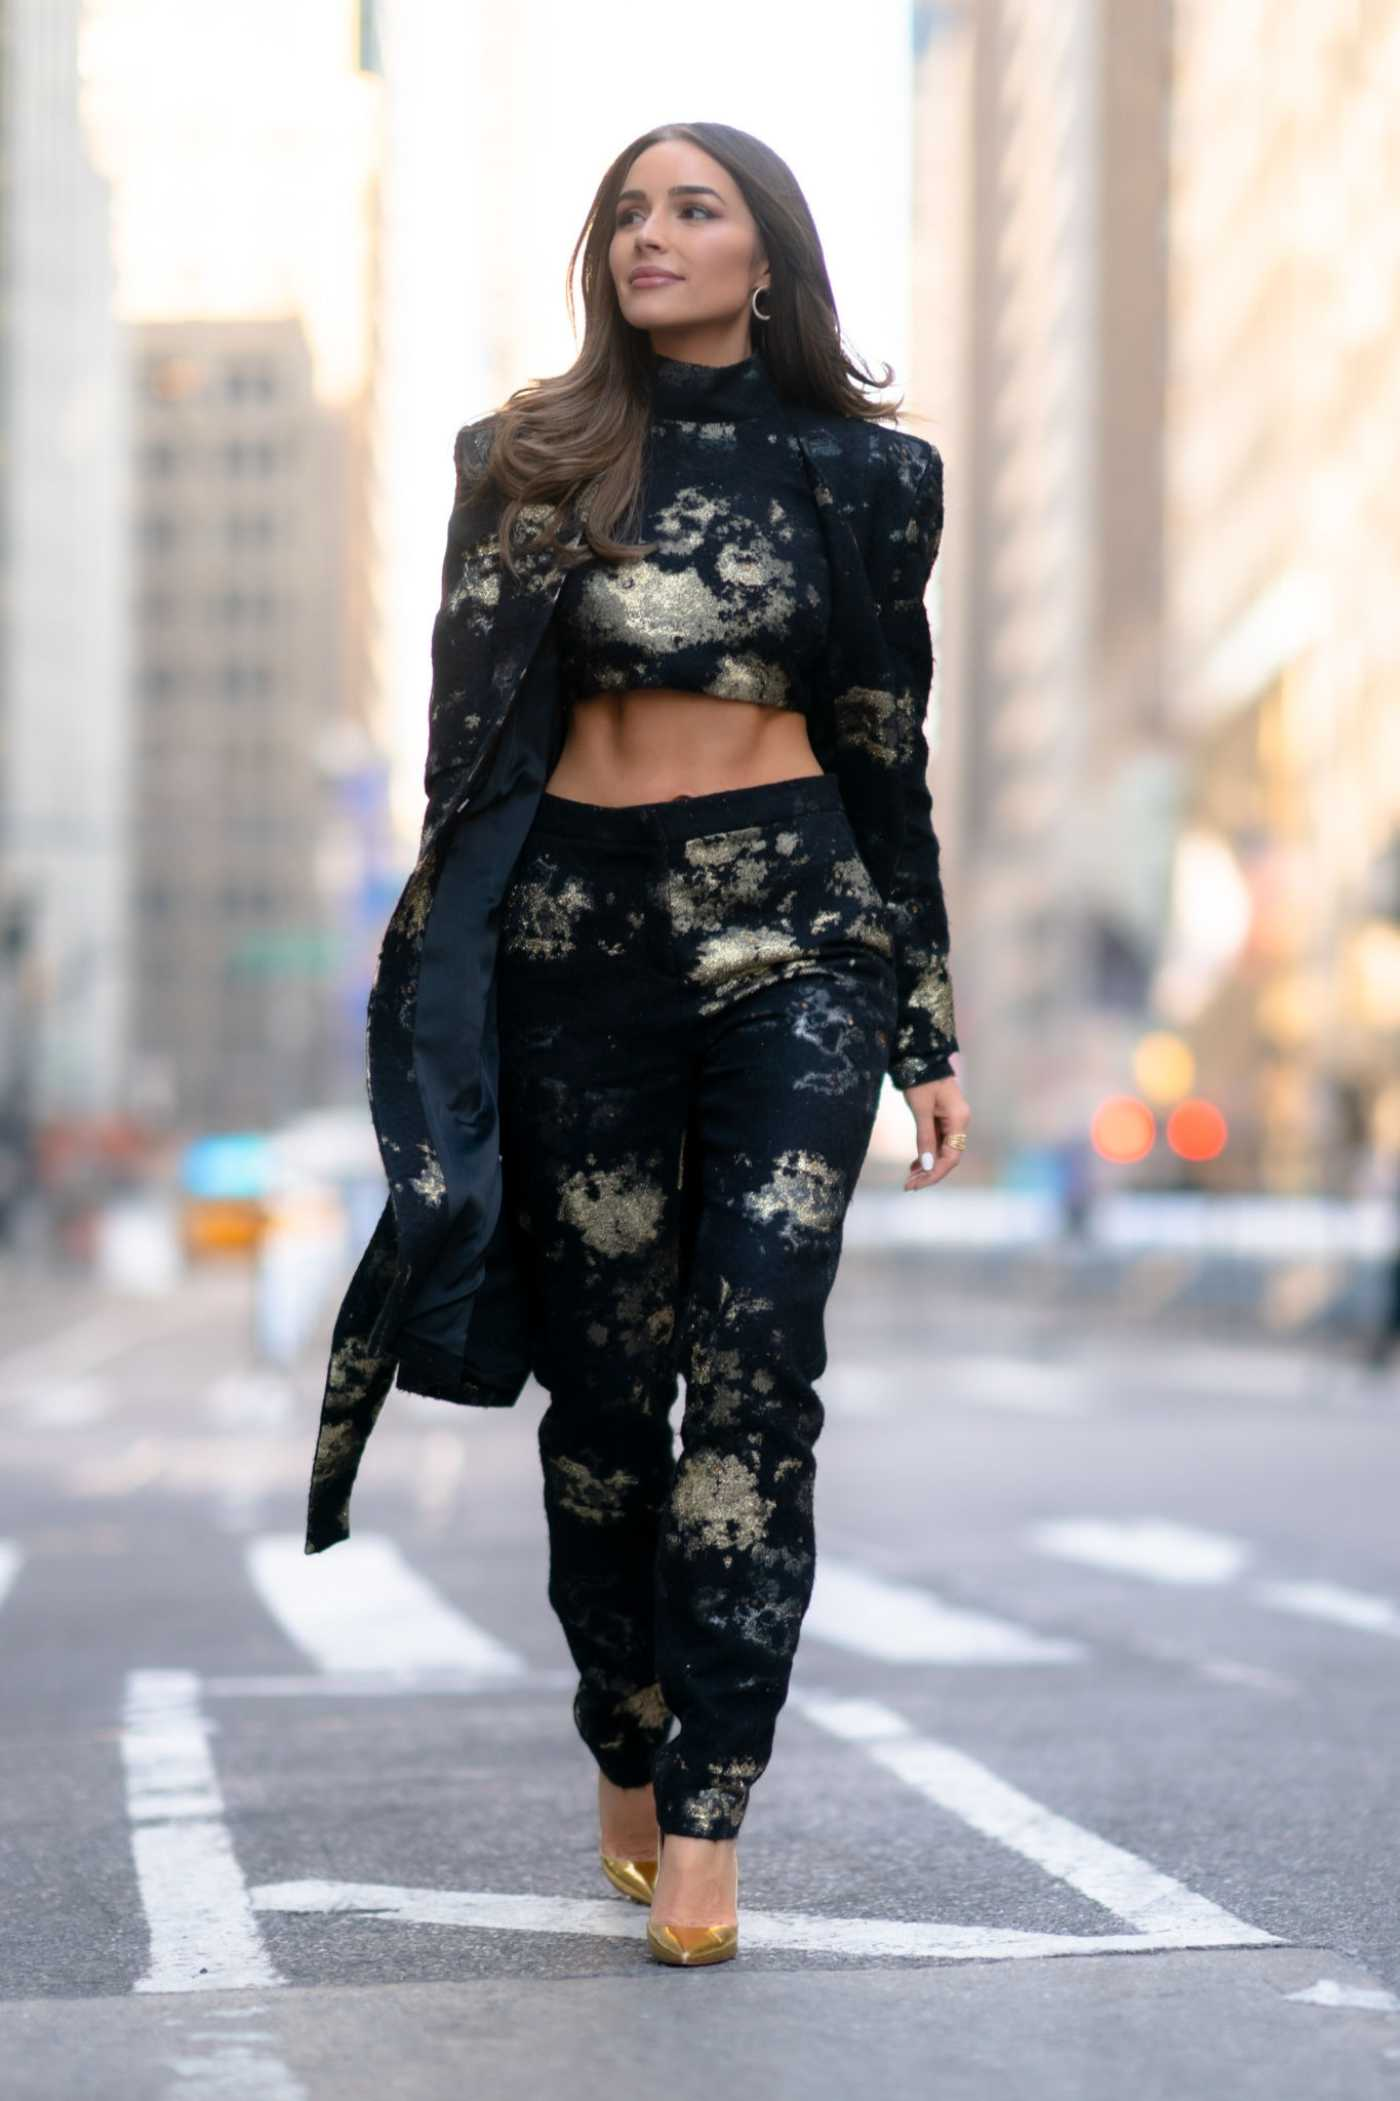 Olivia Culpo in a Black Floral Suit Was Seen Out in New York City 01/24/2020